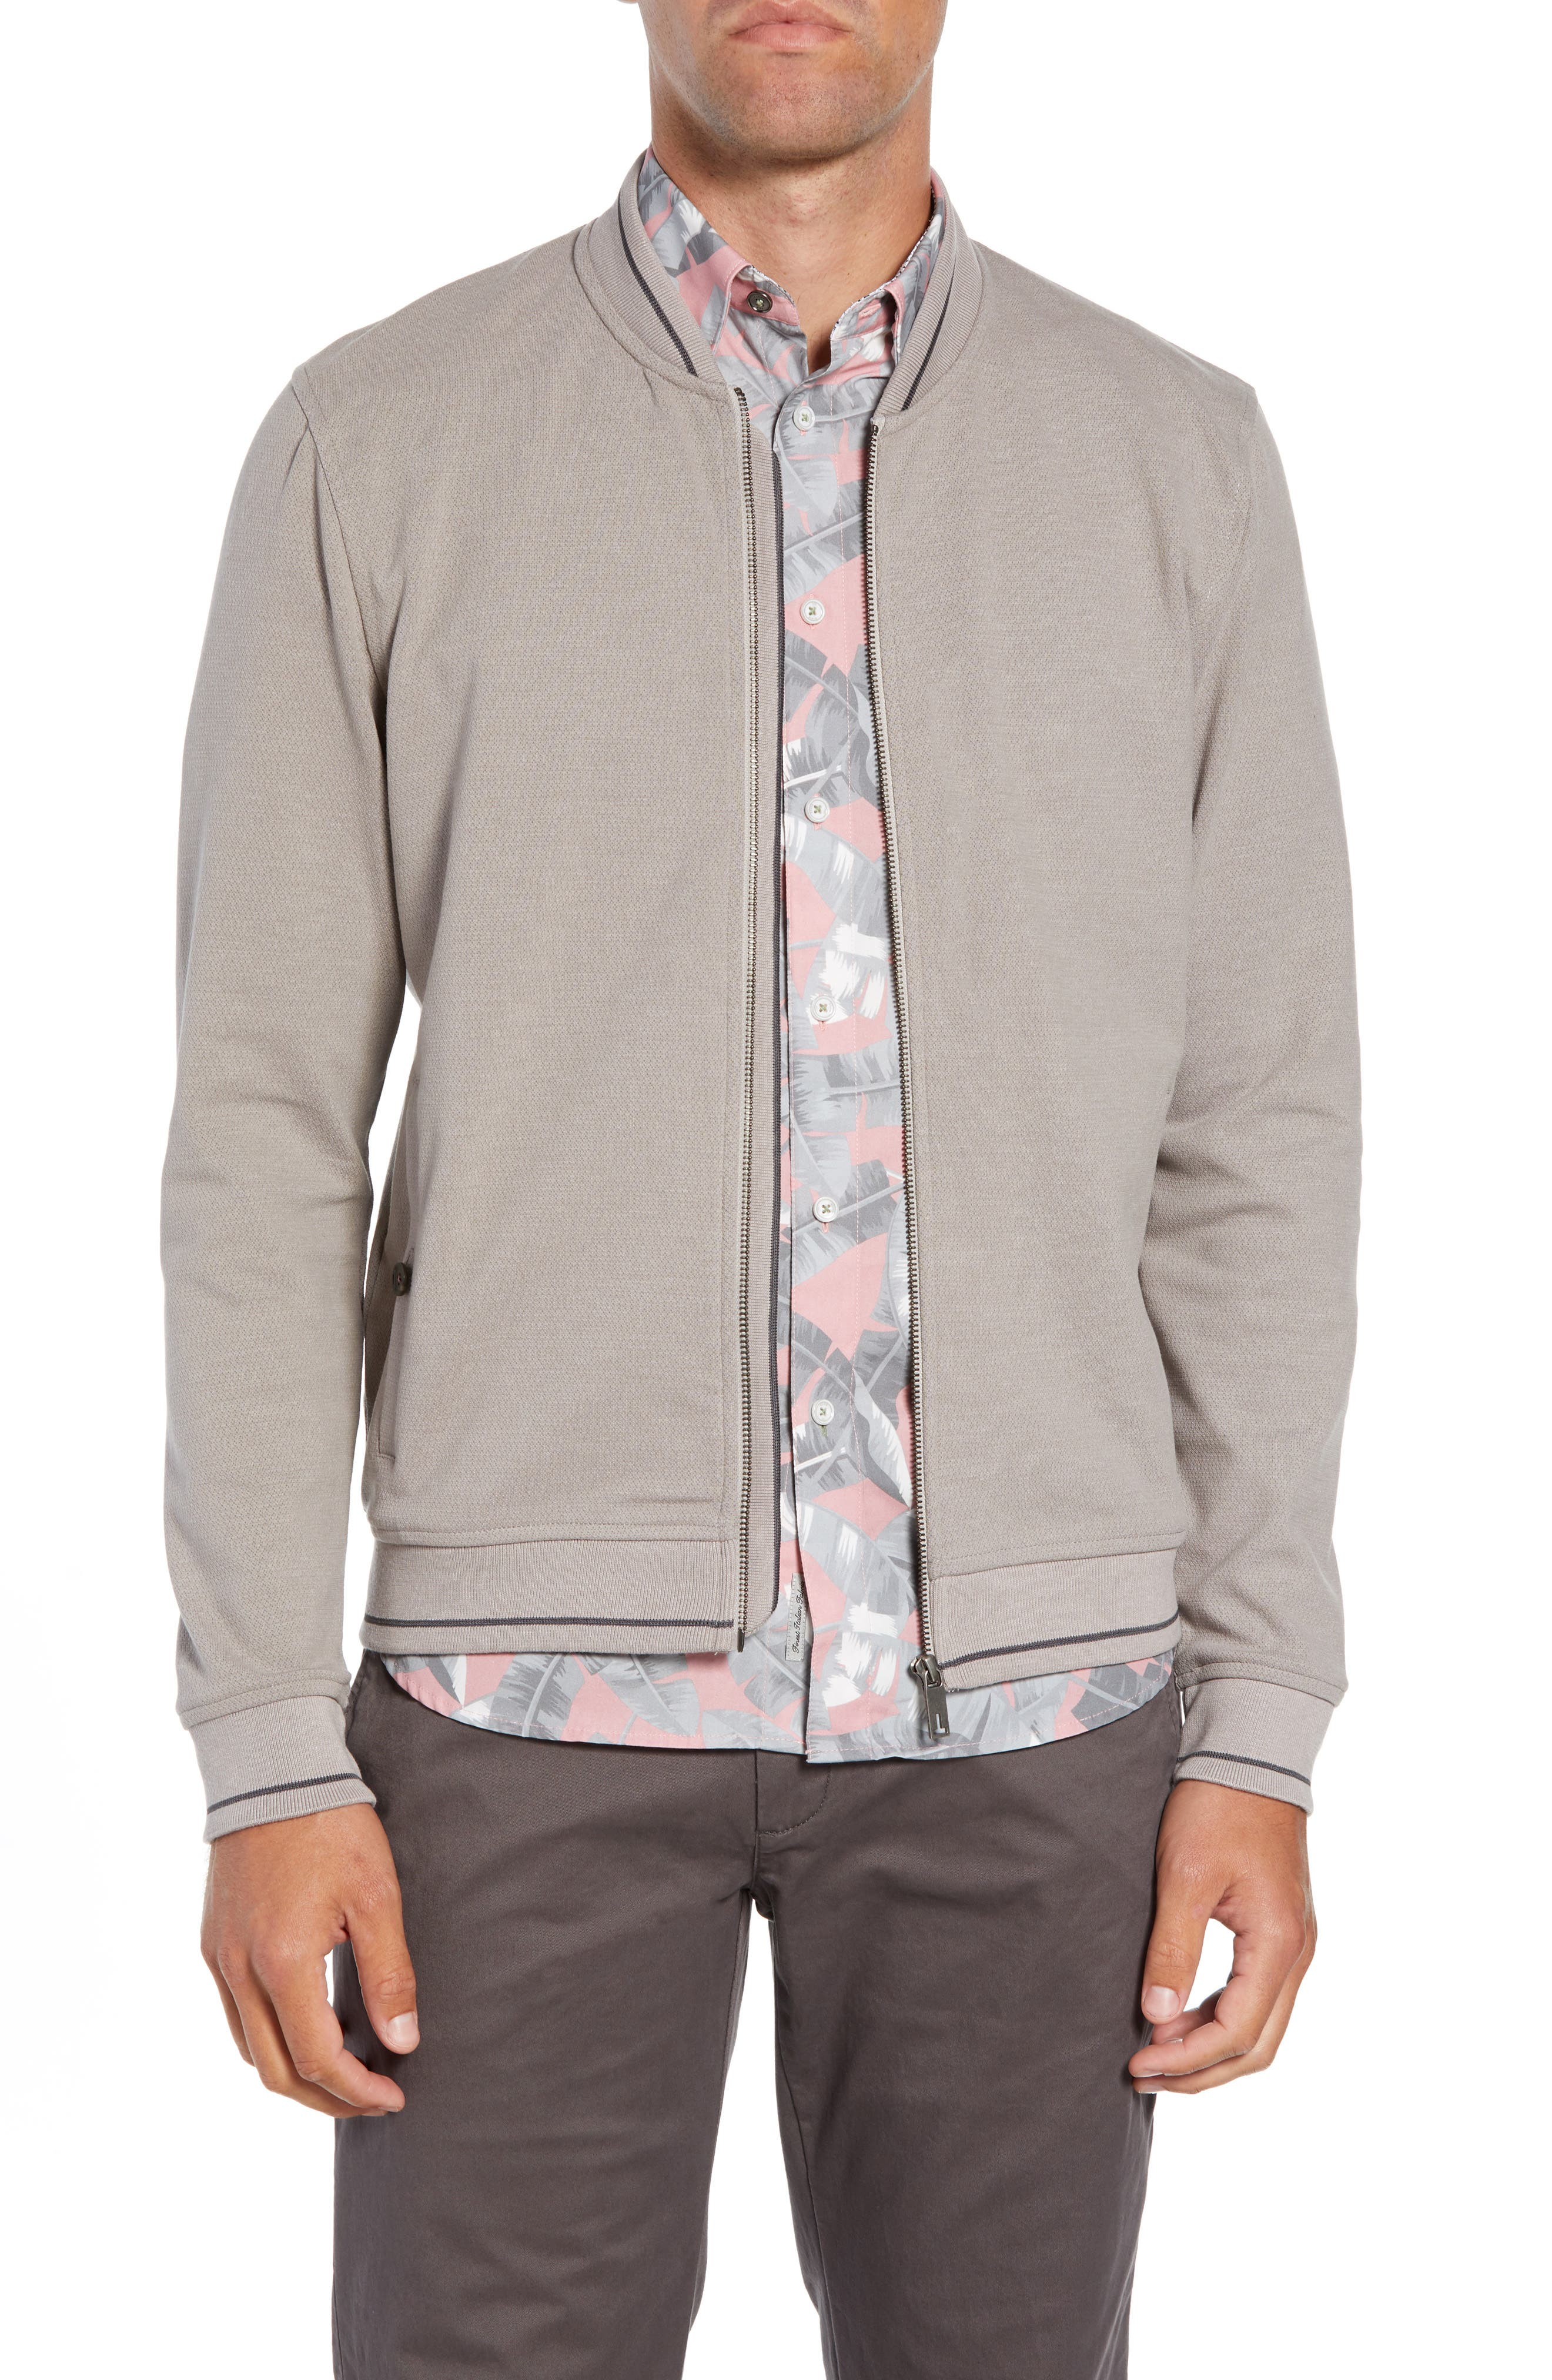 Chicpea Jersey Bomber Jacket,                             Main thumbnail 1, color,                             250